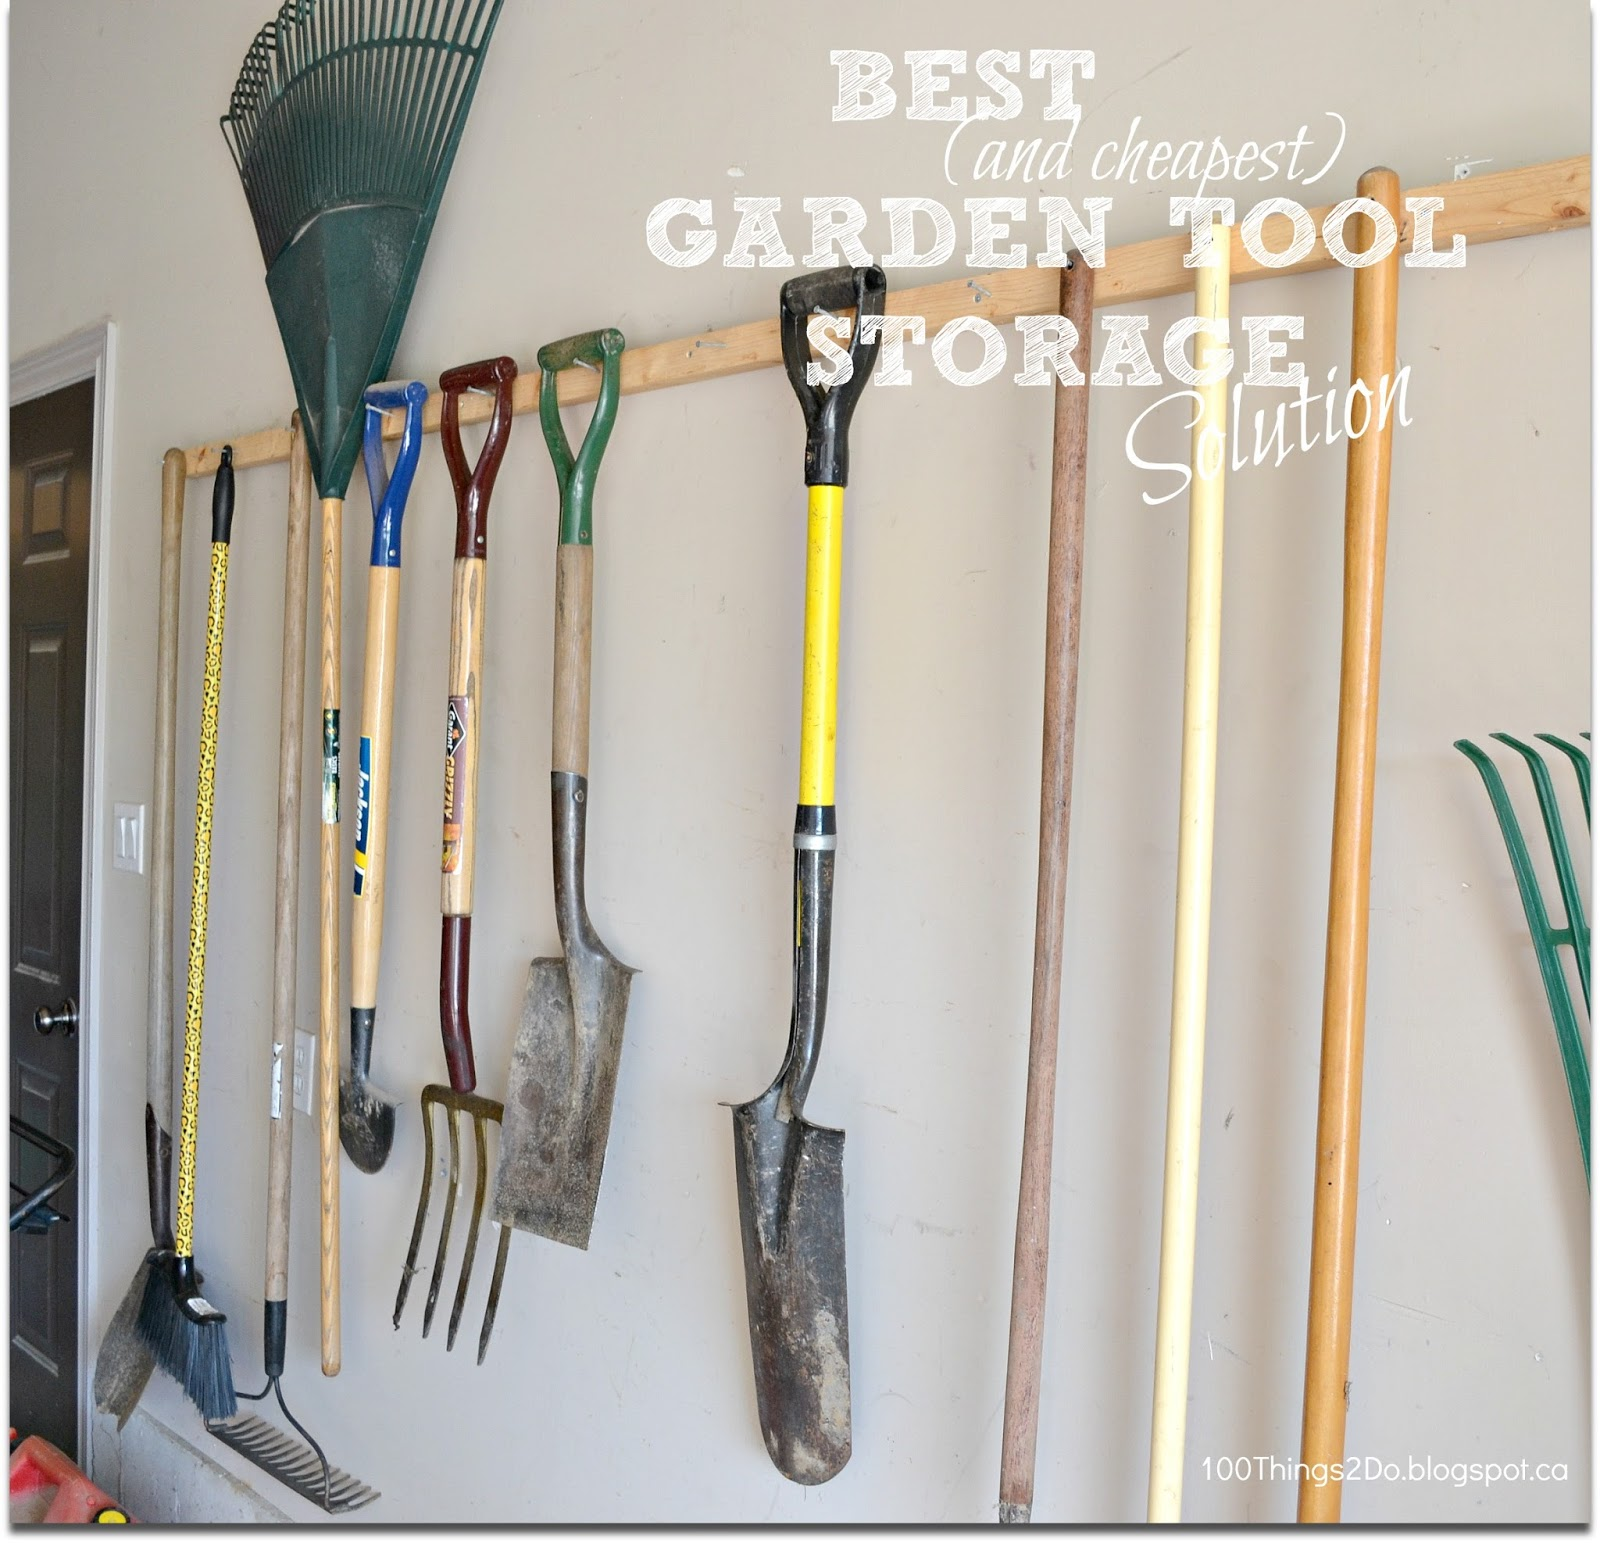 Storing garden tools without spending a fortune 100 for Best gardening equipment